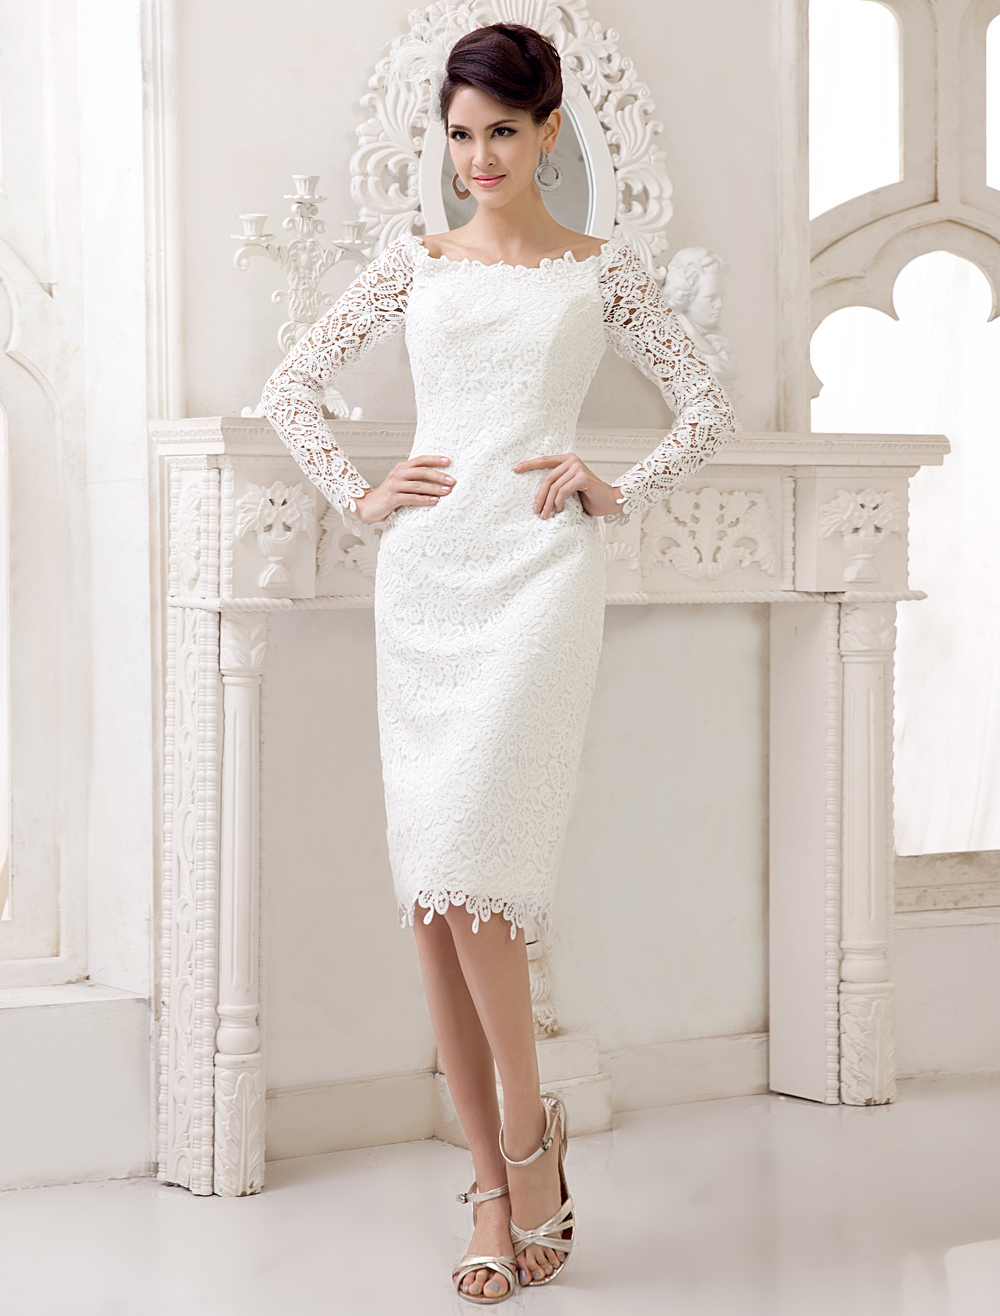 Short Simple Wedding Dresses 2020 Lace Long Sleeve Slit Ivory Knee Length Bridal Reception Dress Milanoo